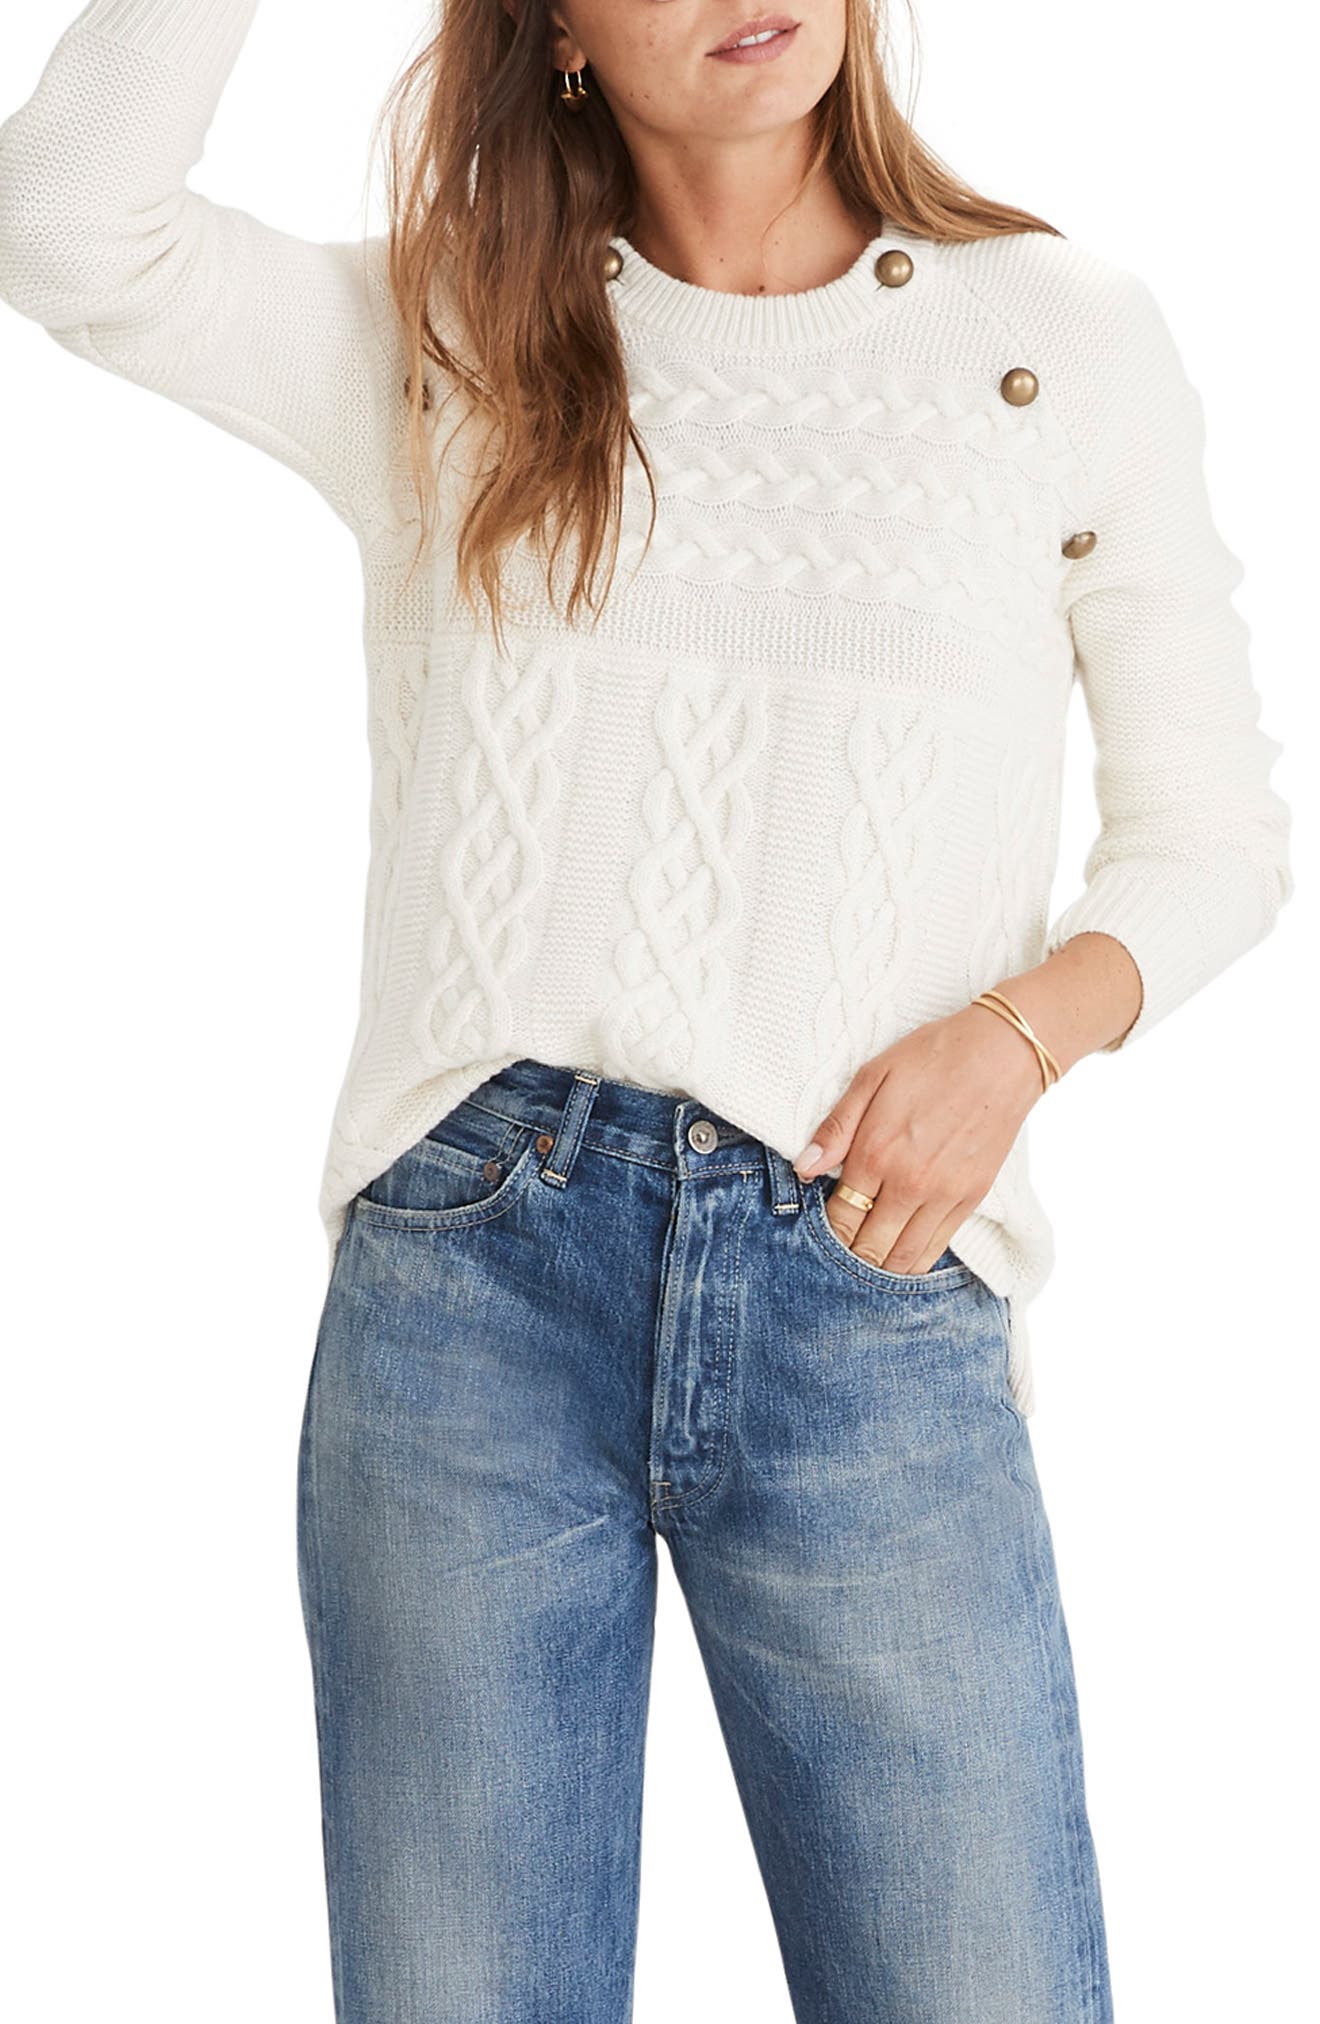 MADEWELL,                             Button Detail Cable Knit Pullover Sweater,                             Main thumbnail 1, color,                             100